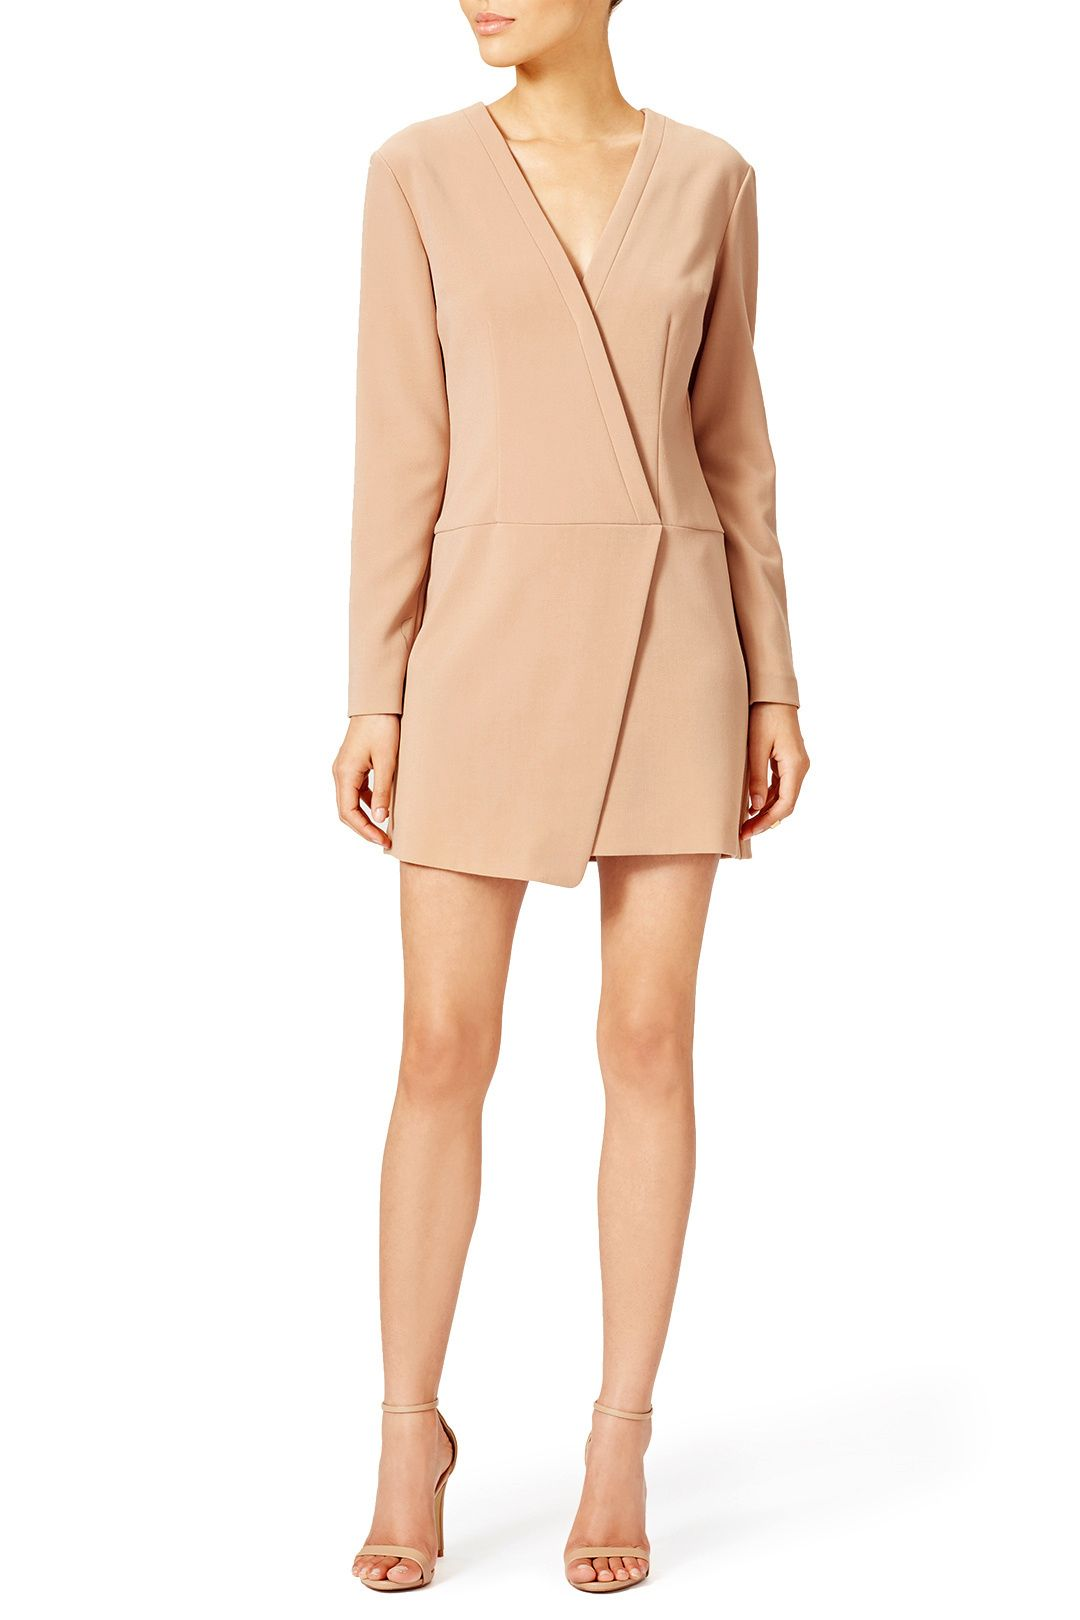 Camel Wrap Dress by CYNTHIA STEFFE for $55 | Rent The Runway